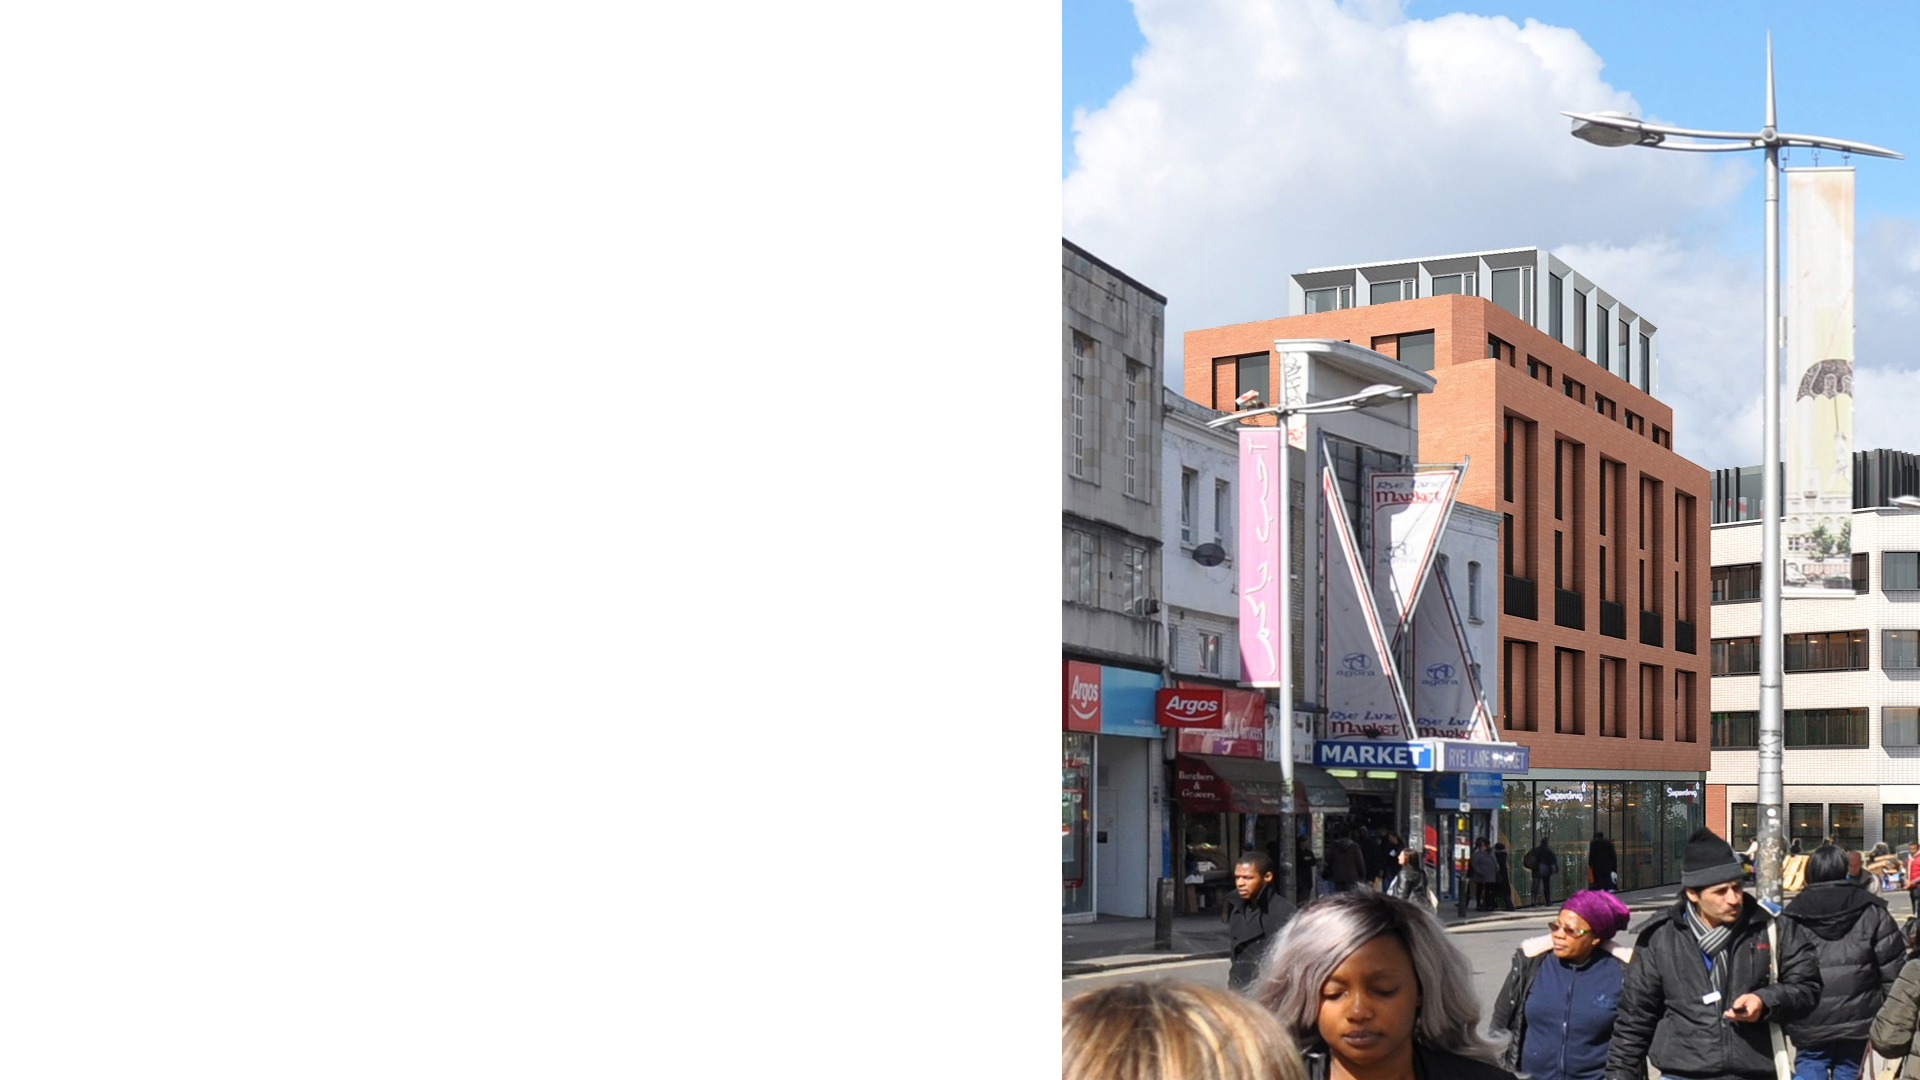 Residential led mixed development at 38-44 Rye Lane Peckham from the south along Rye Lane comprising 27 apartments and retail use at street level.